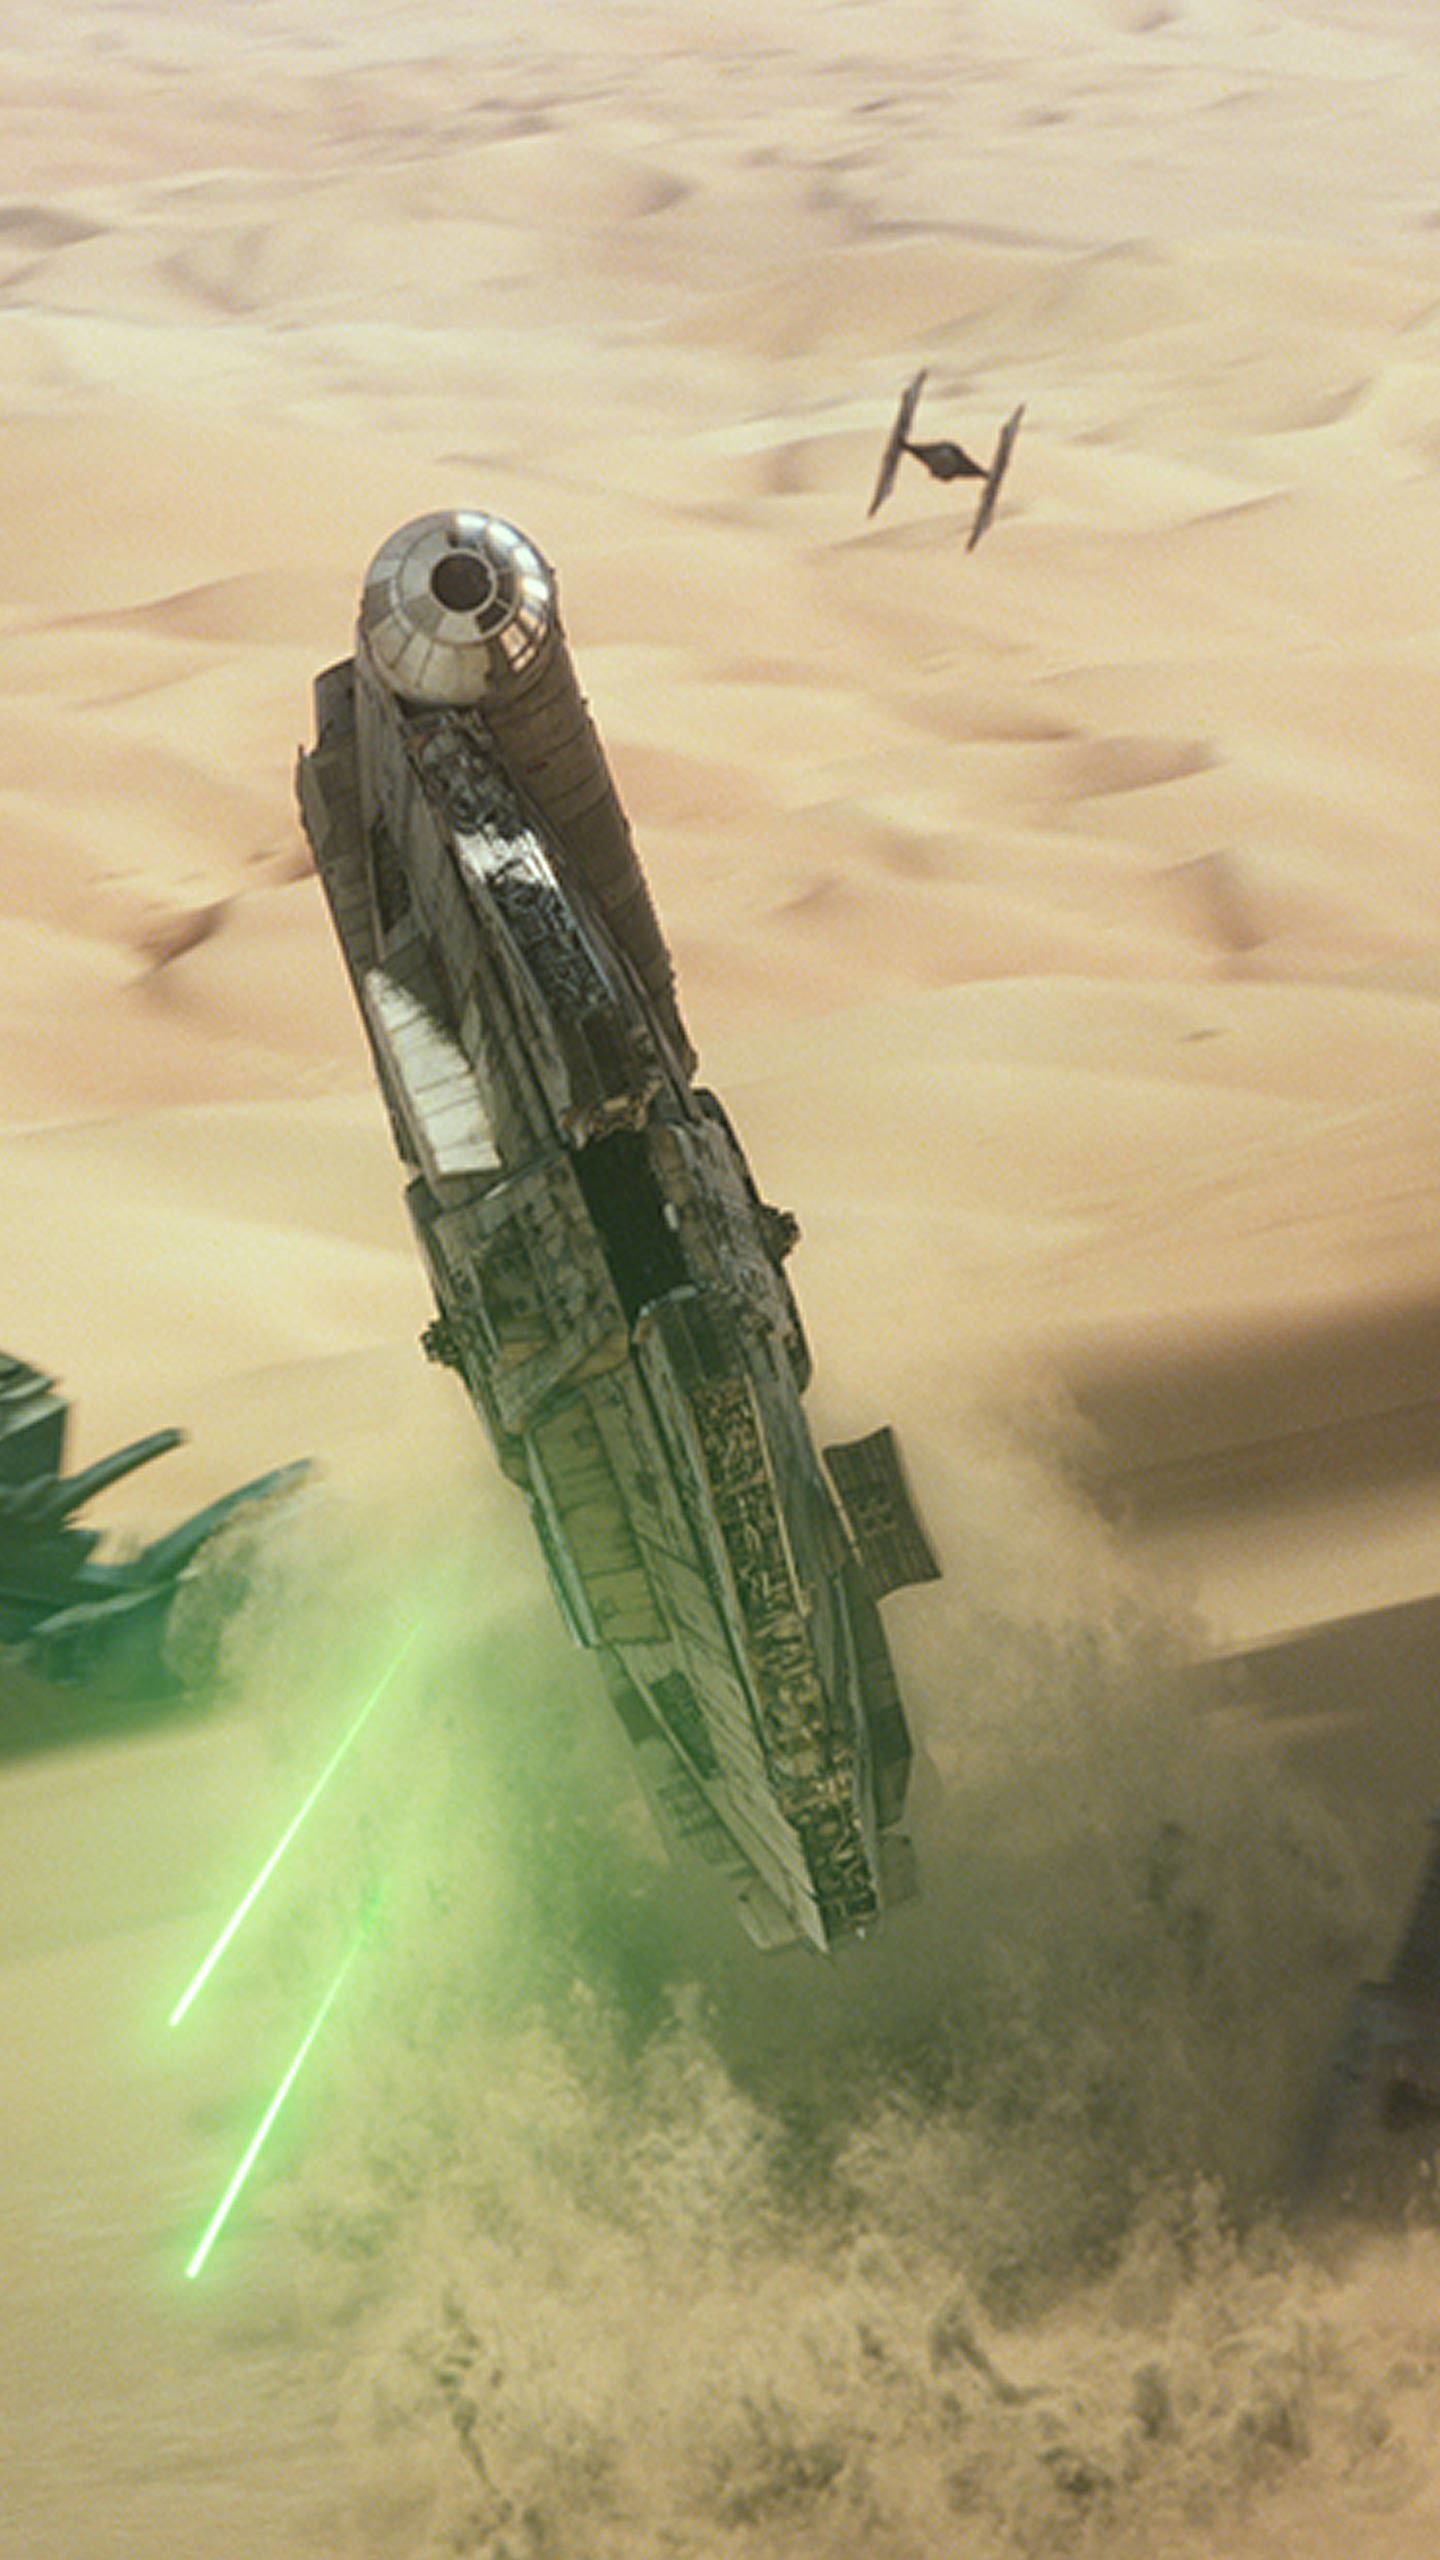 Star Wars: The Force Awakens wallpapers for your iPhone 6s and